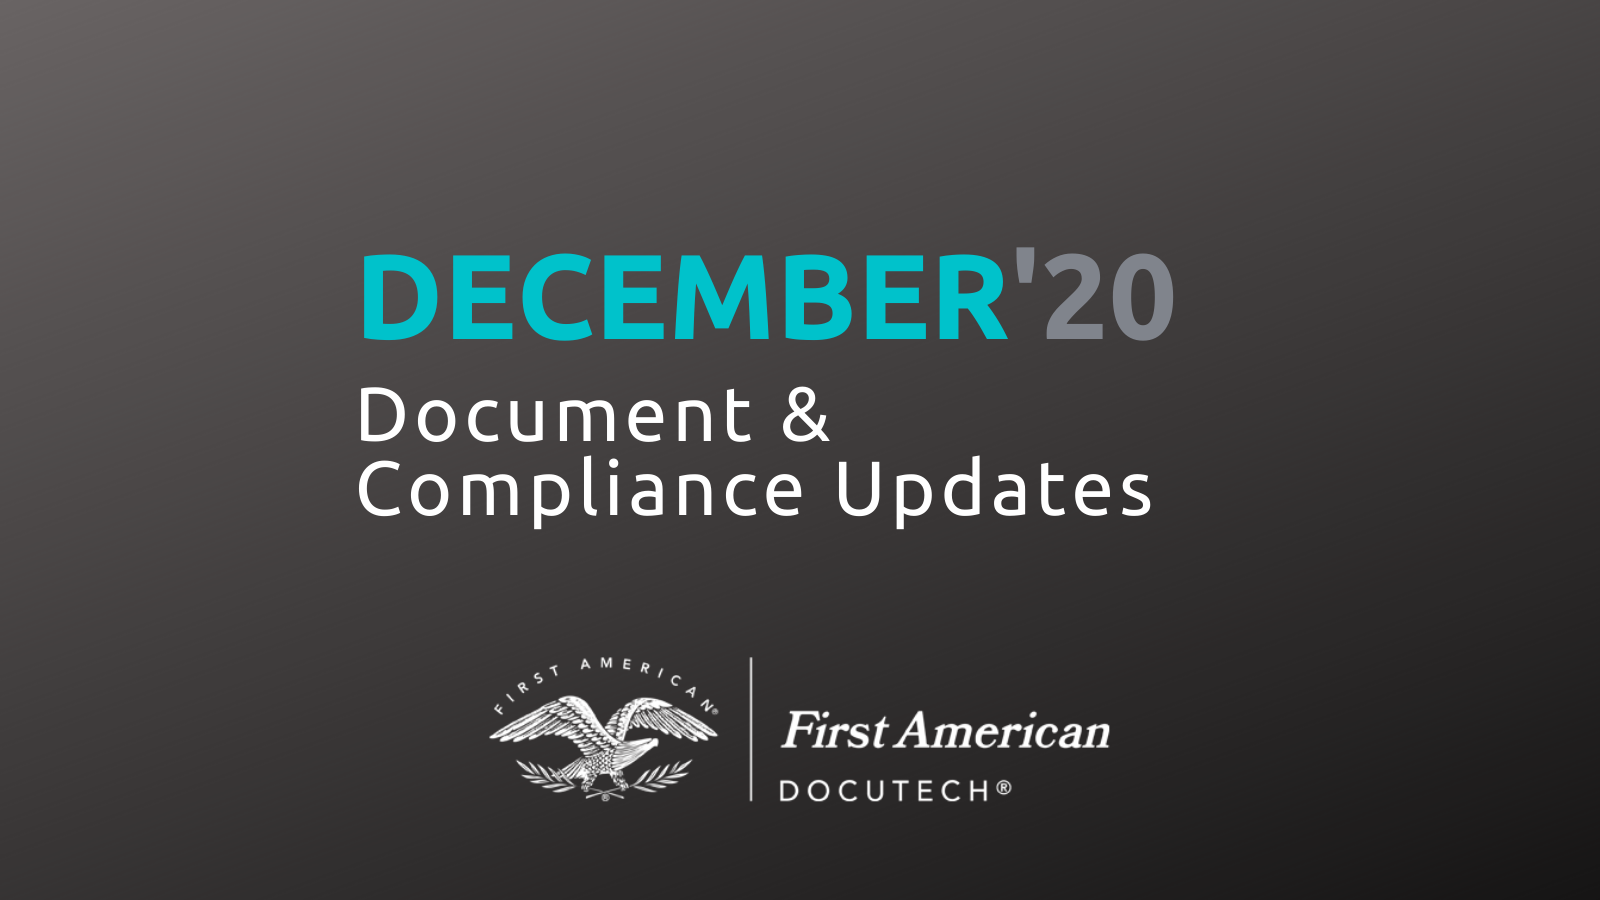 December '20 Document and Compliance Updates